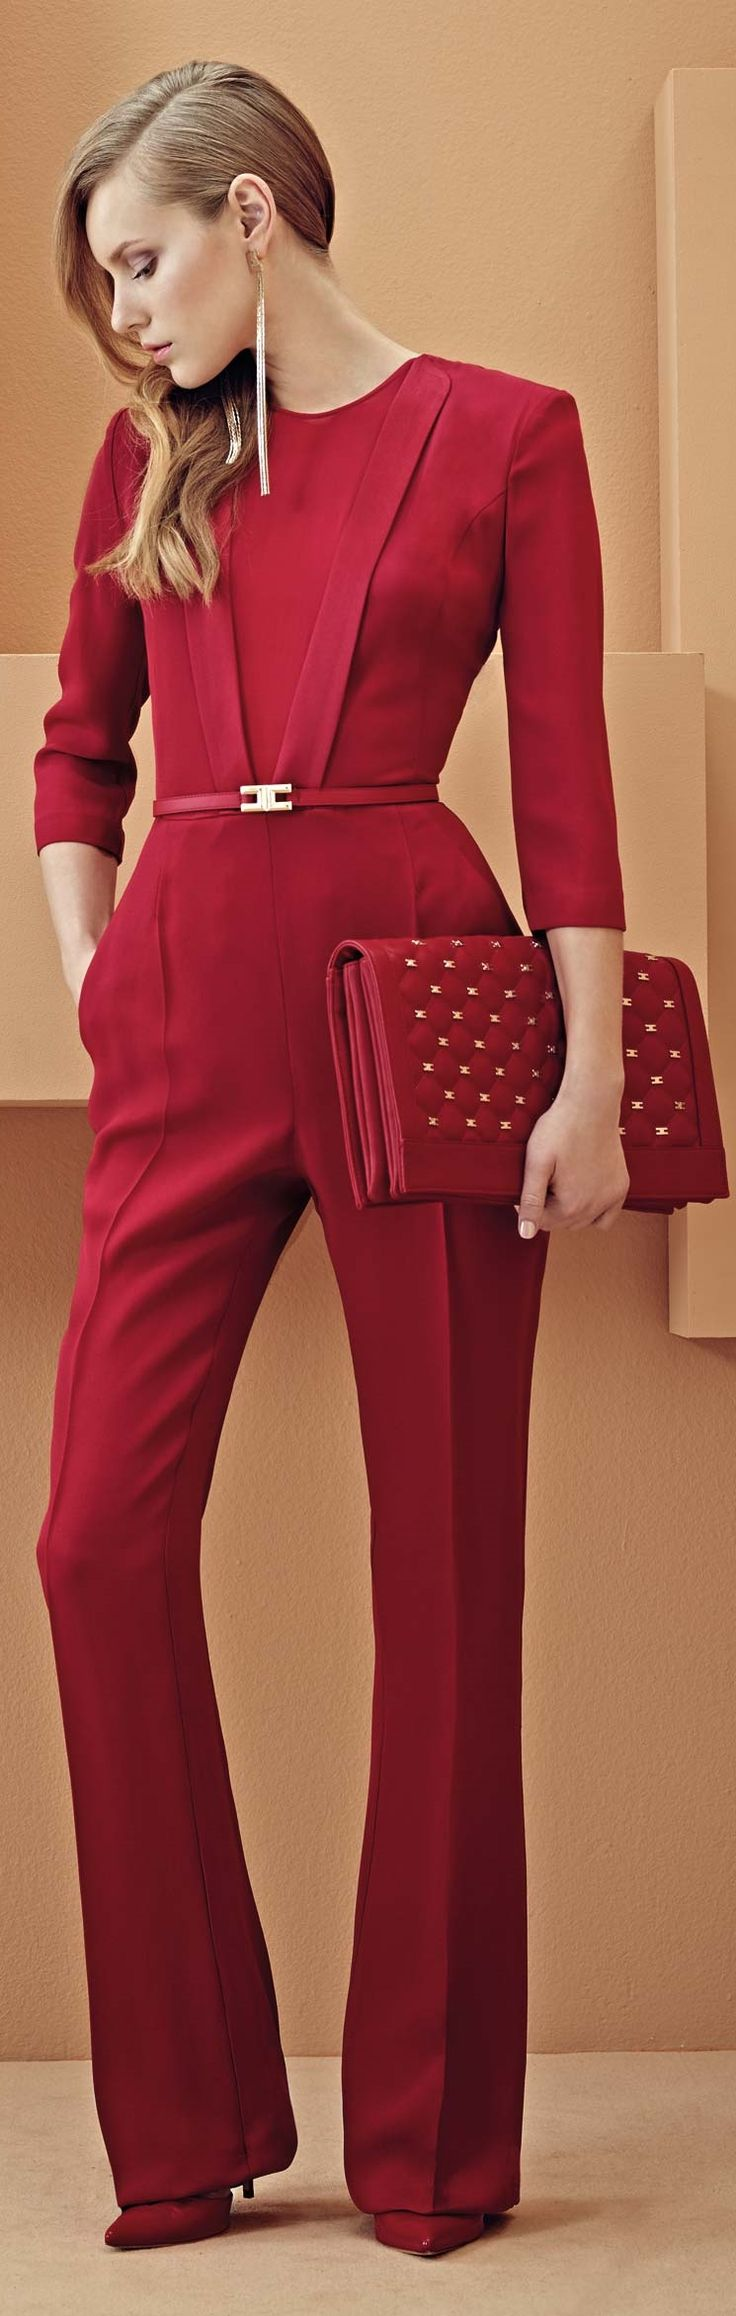 Ultra minimum in such a vibrant red color! Appropriate for so many occasions depending on how one accessories of course! :)   Elisabetta Franchi S/S 2014: Ultra minimum in such a vibrant red color! Appropriate for so many occasions depending on how one accessories of course! :)   Elisabetta Franchi S/S 2014